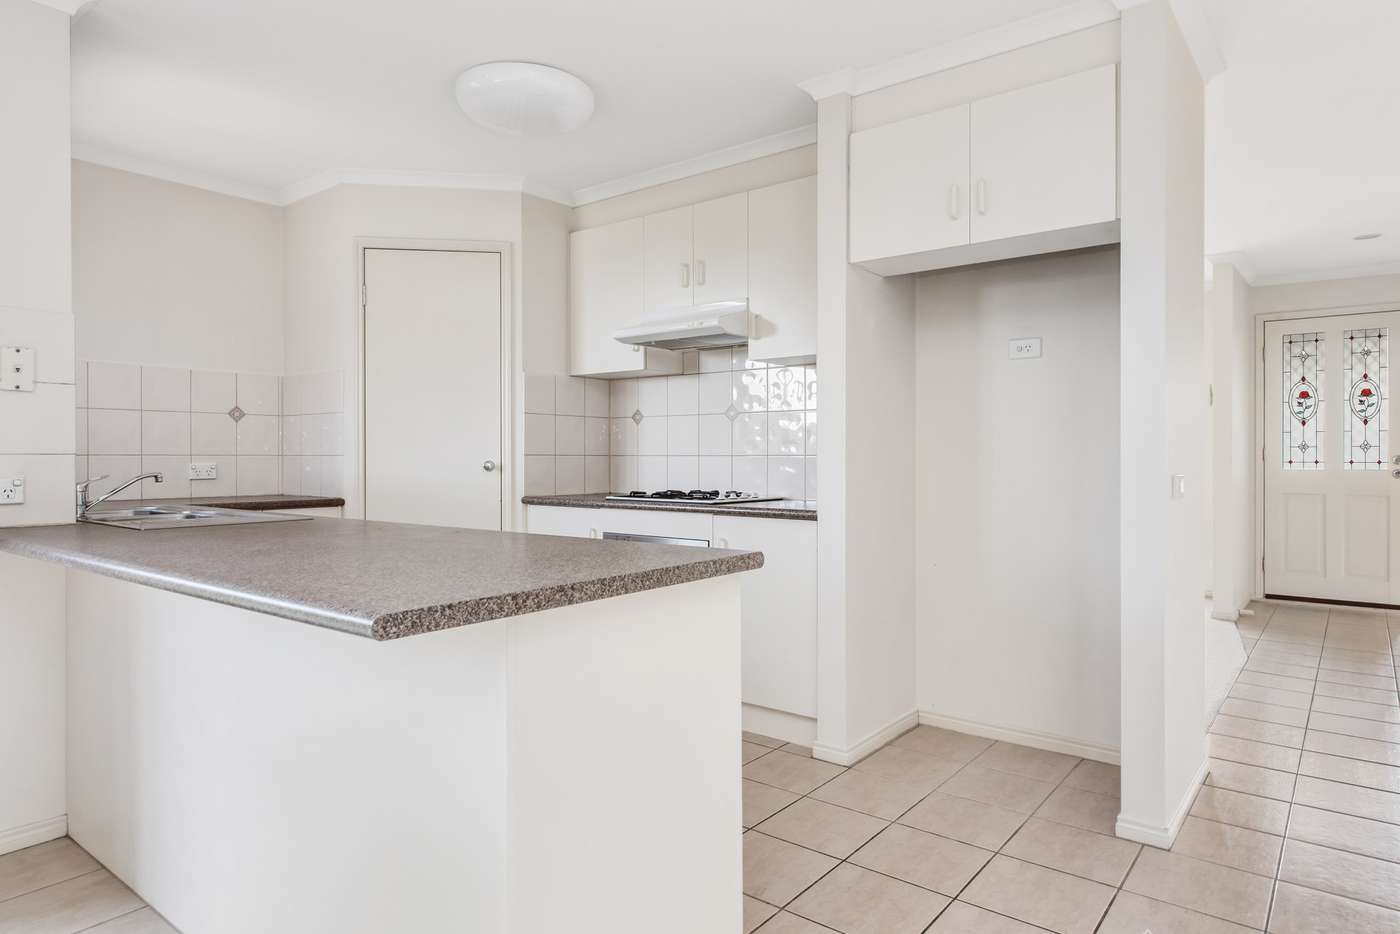 Fifth view of Homely house listing, 29 Browtop Road, Narre Warren VIC 3805